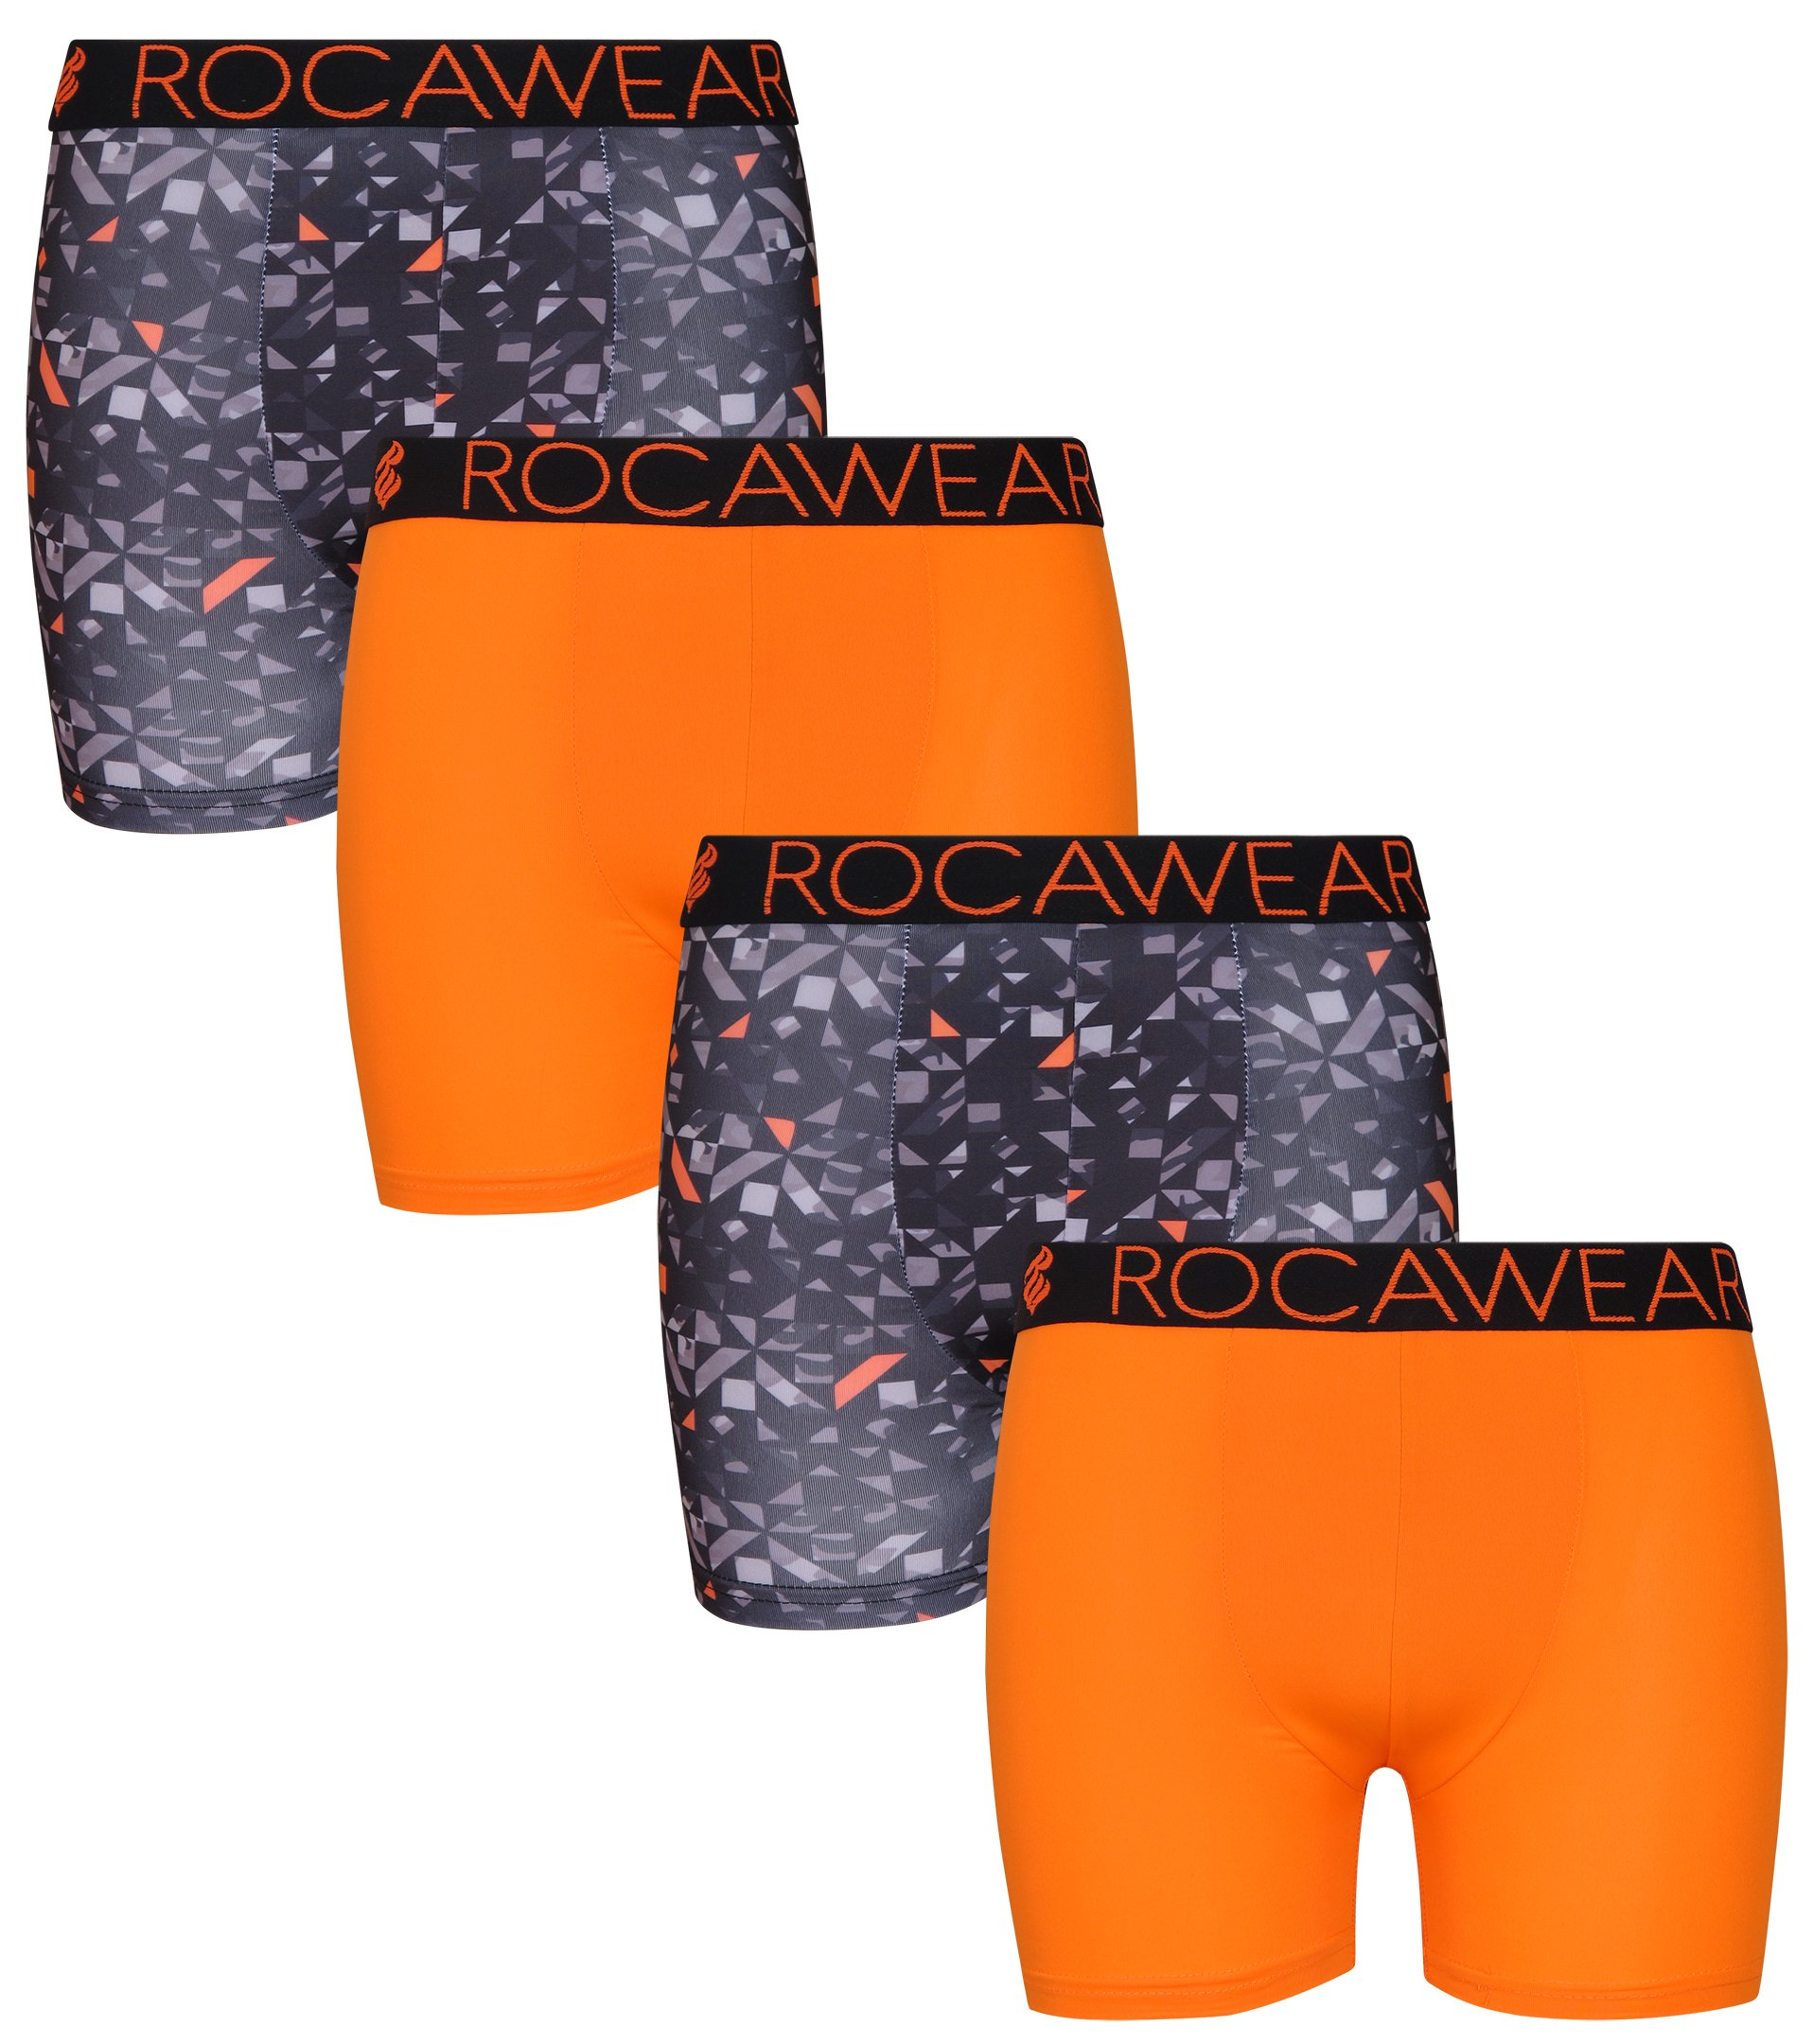 Rocawear Boy's 4 Pack Performance Boxer Brief, Camo and Orange, Small/7-8'